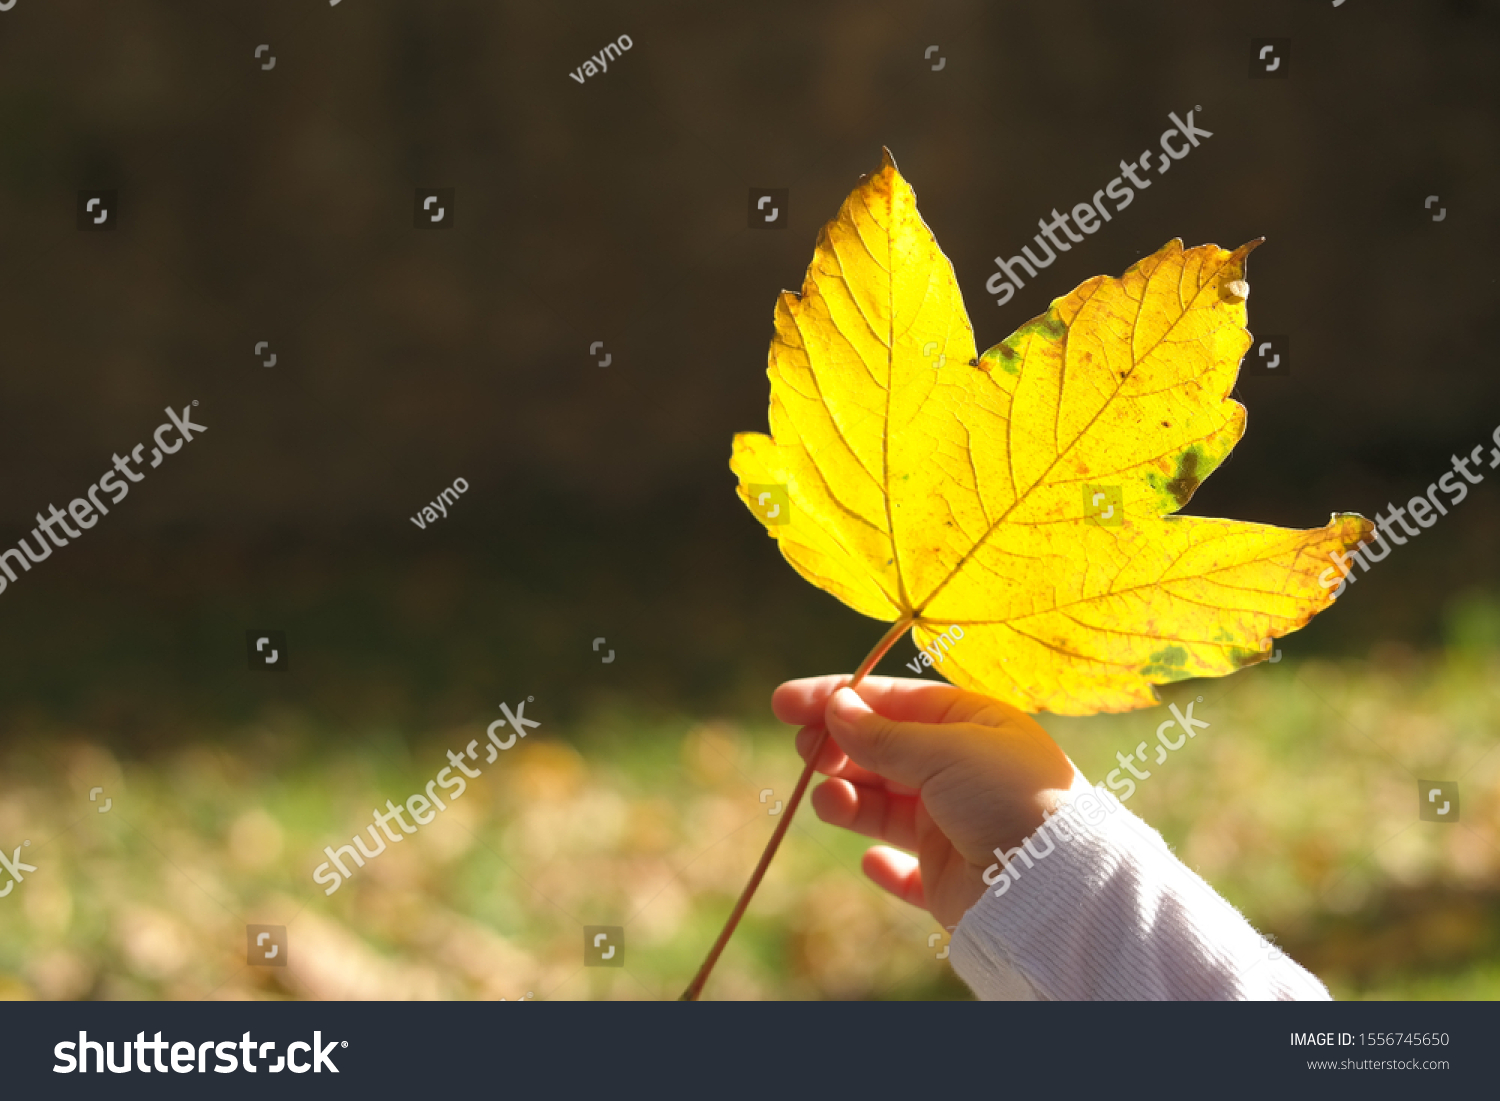 stock-photo-a-yellow-sycamore-leaf-in-th